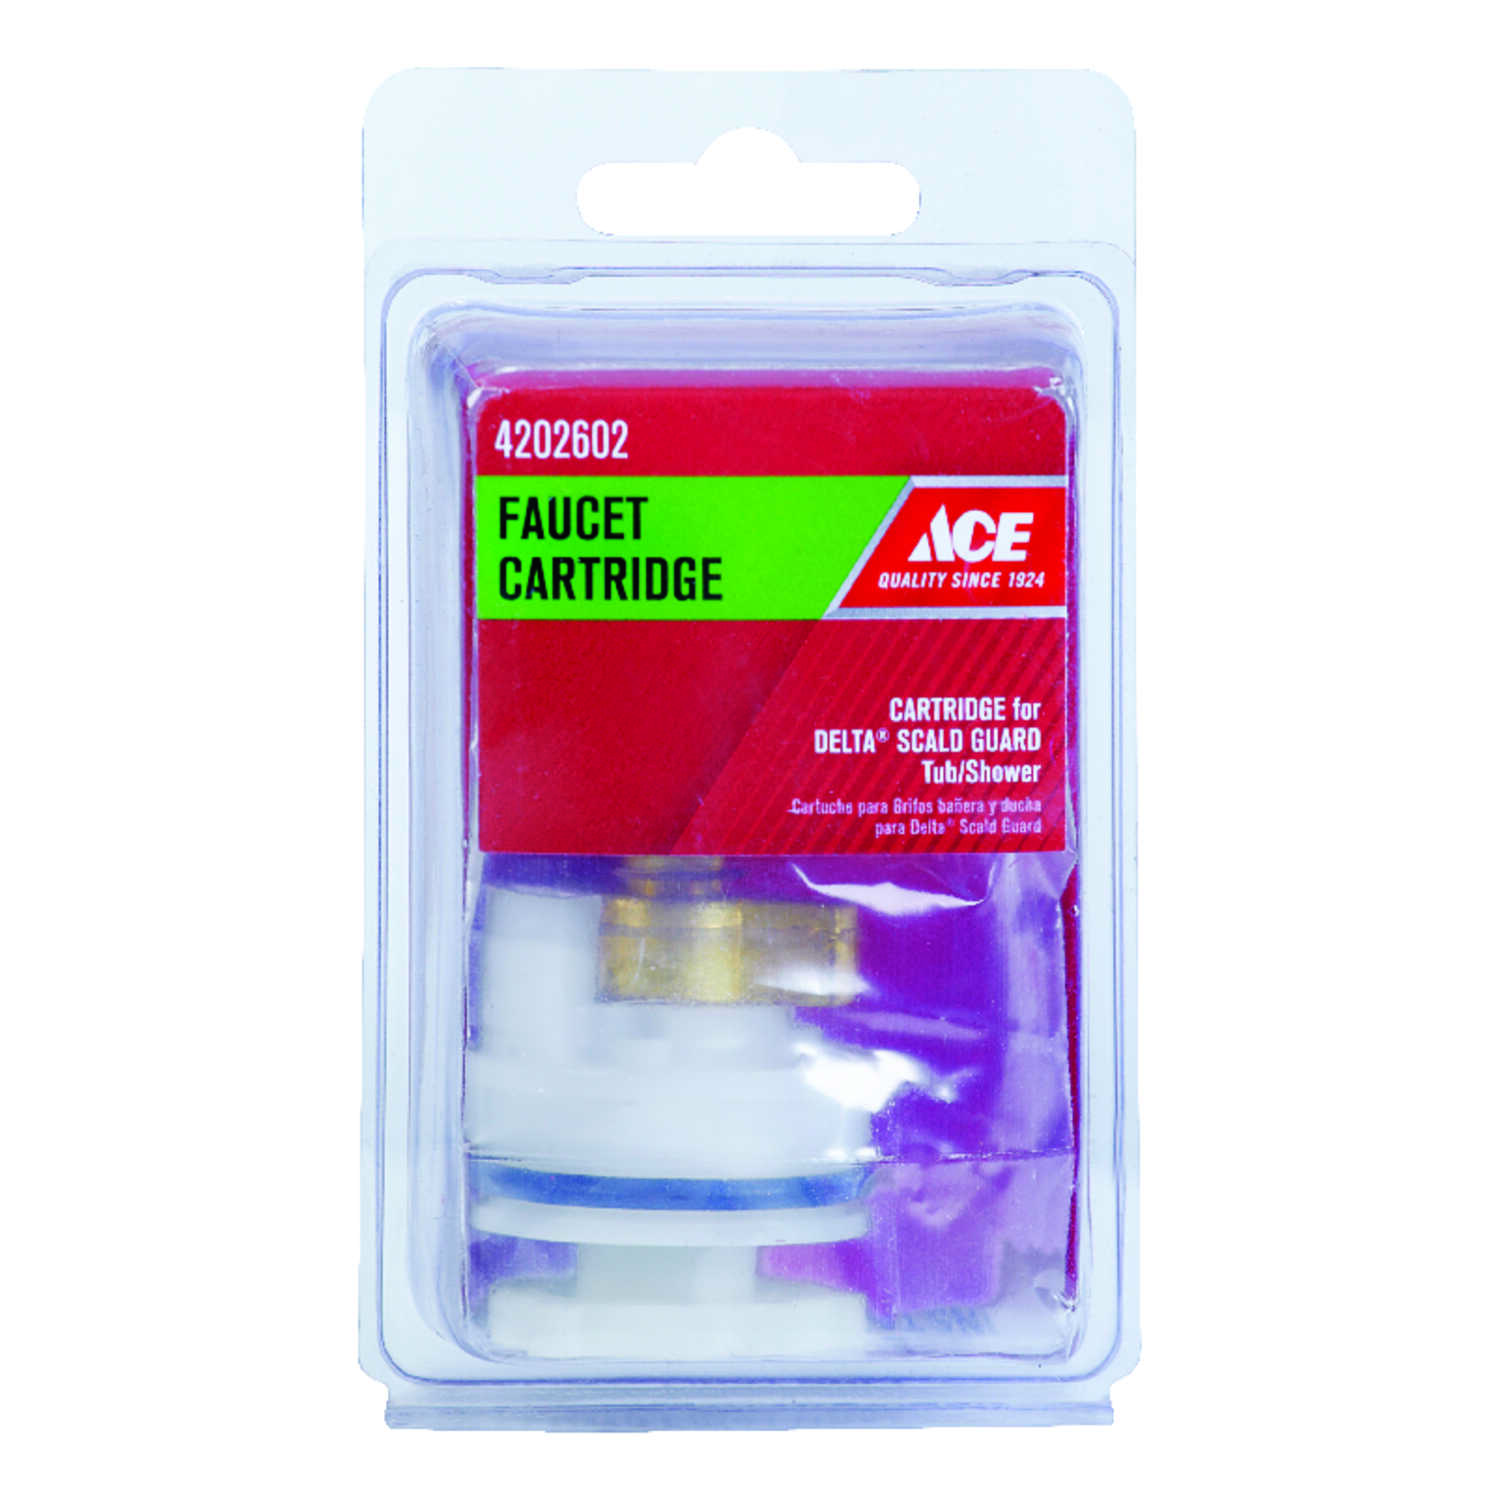 Ace  Hot and Cold  DL-10  Faucet Cartridge  For Delta Scald Guard